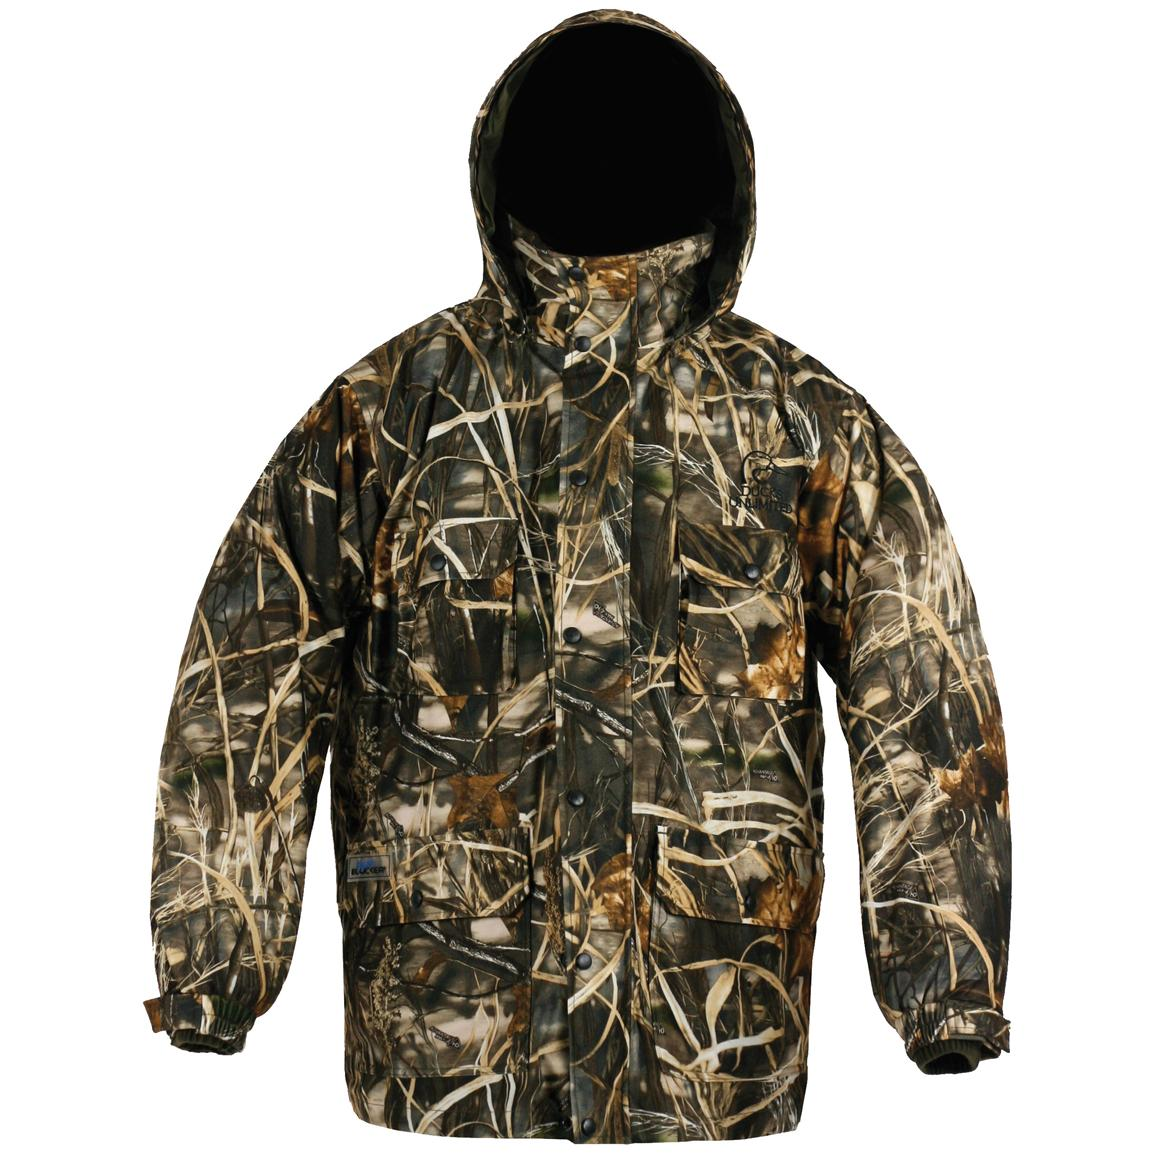 Whitewater® Ducks Unlimited® Transition 3-in-1 Parka, Realtree Max-4®